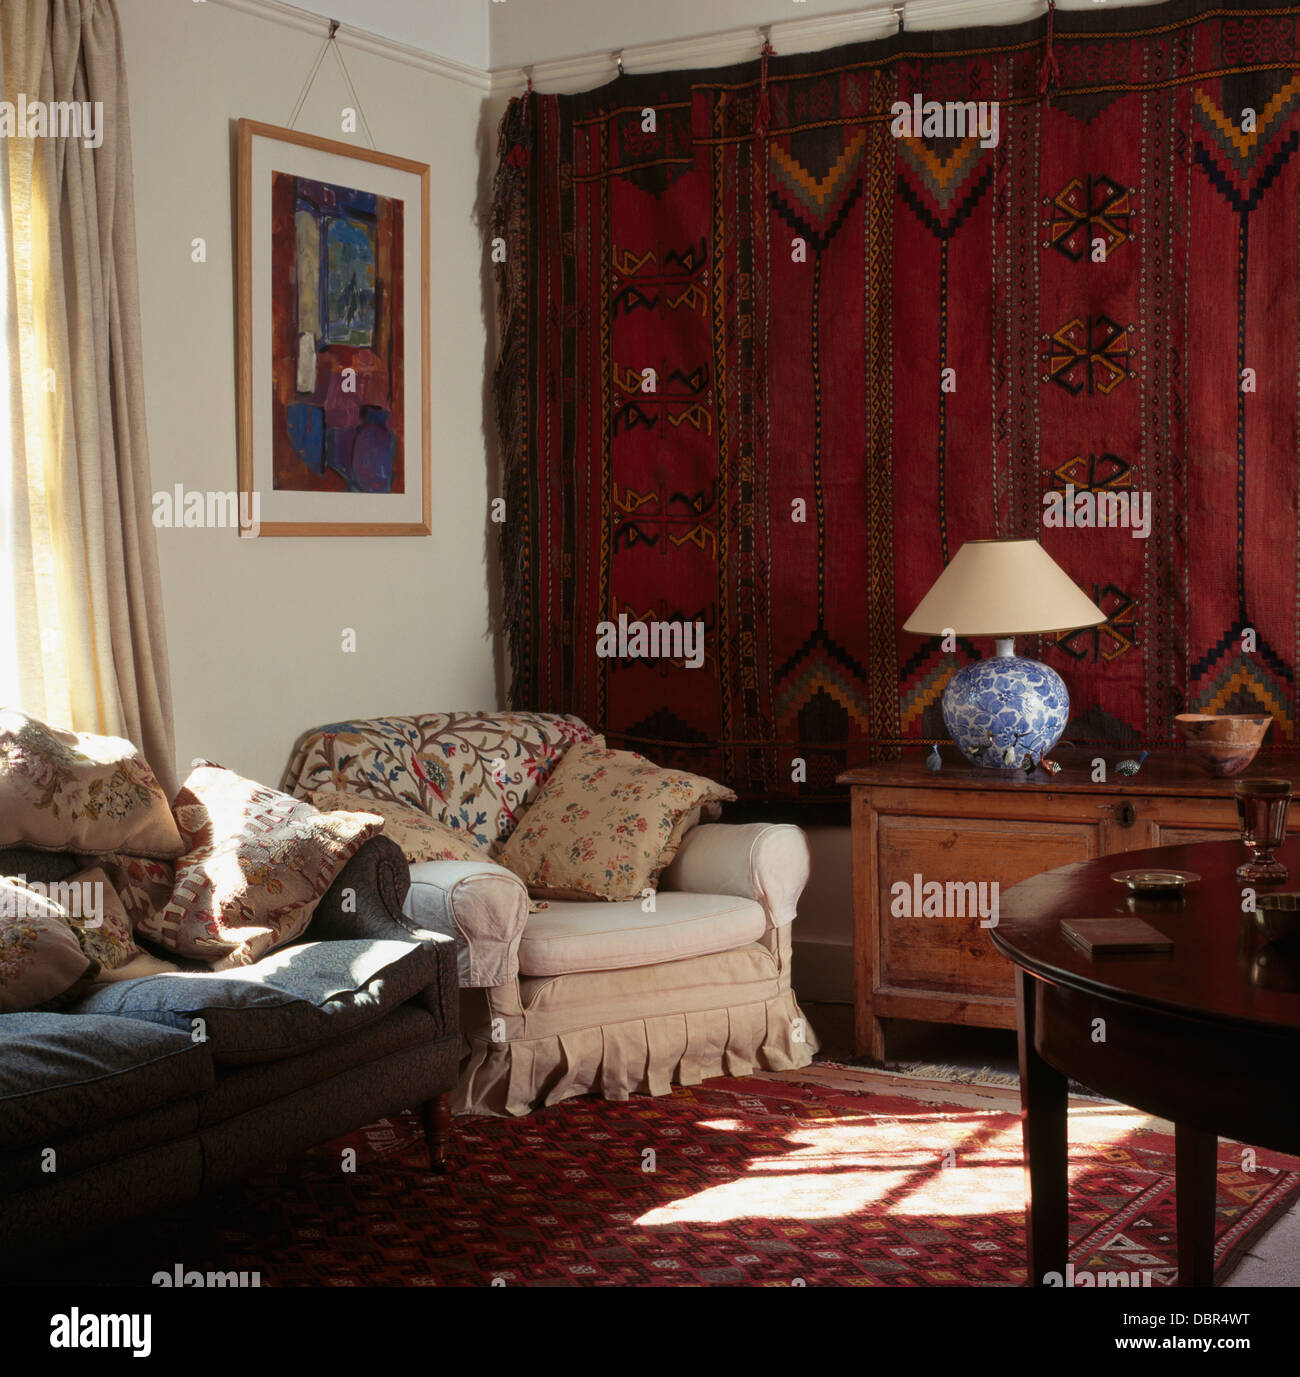 Old Red Persian Carpet Hanging On Wall In Townhouse Living Room With Cream Armchair And Gray Sofa Piled Cushions